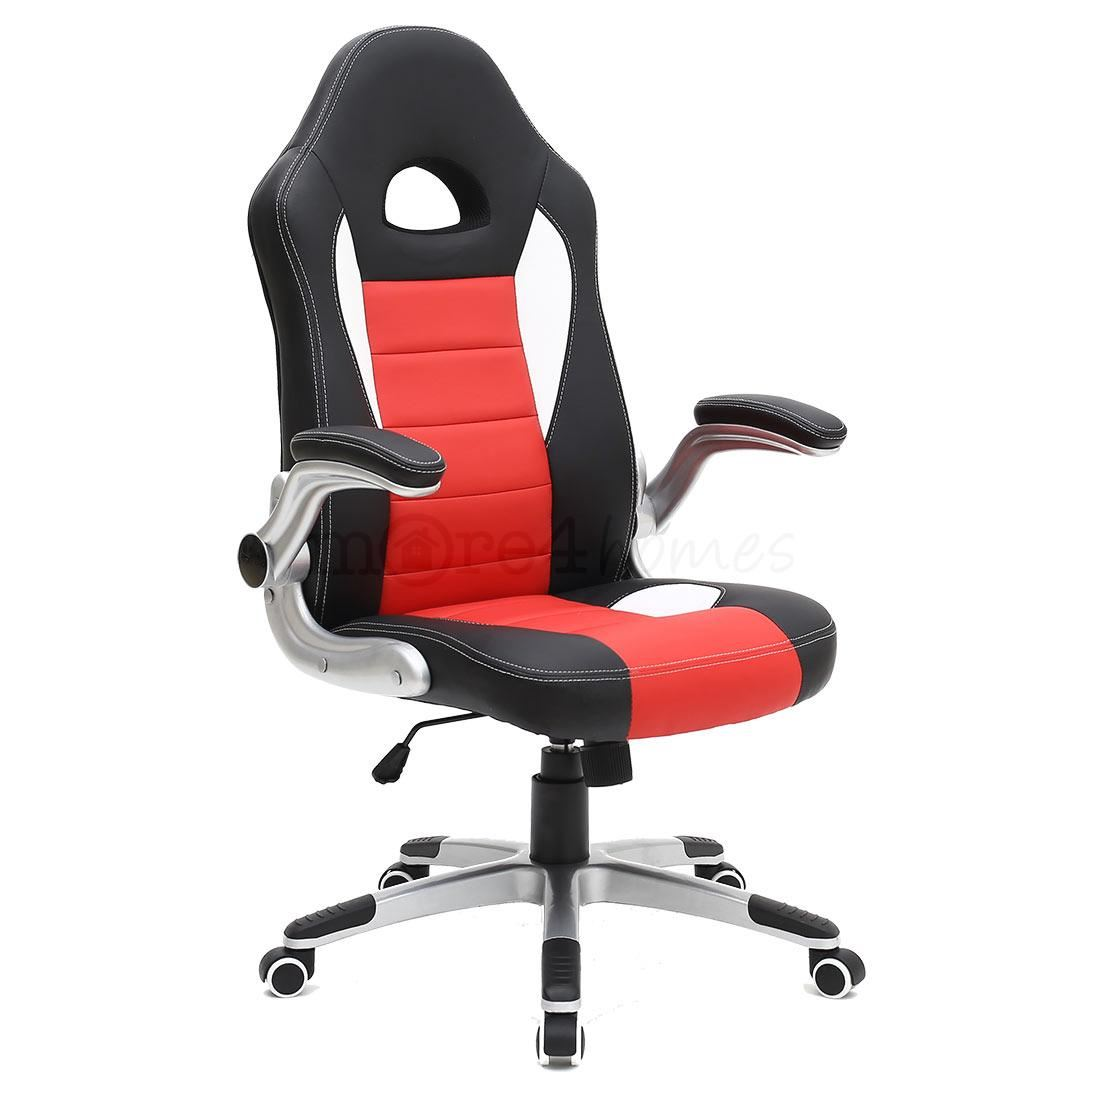 Racing Desk Chair Cruz Sport Racing Car Office Chair Leather Adjustable